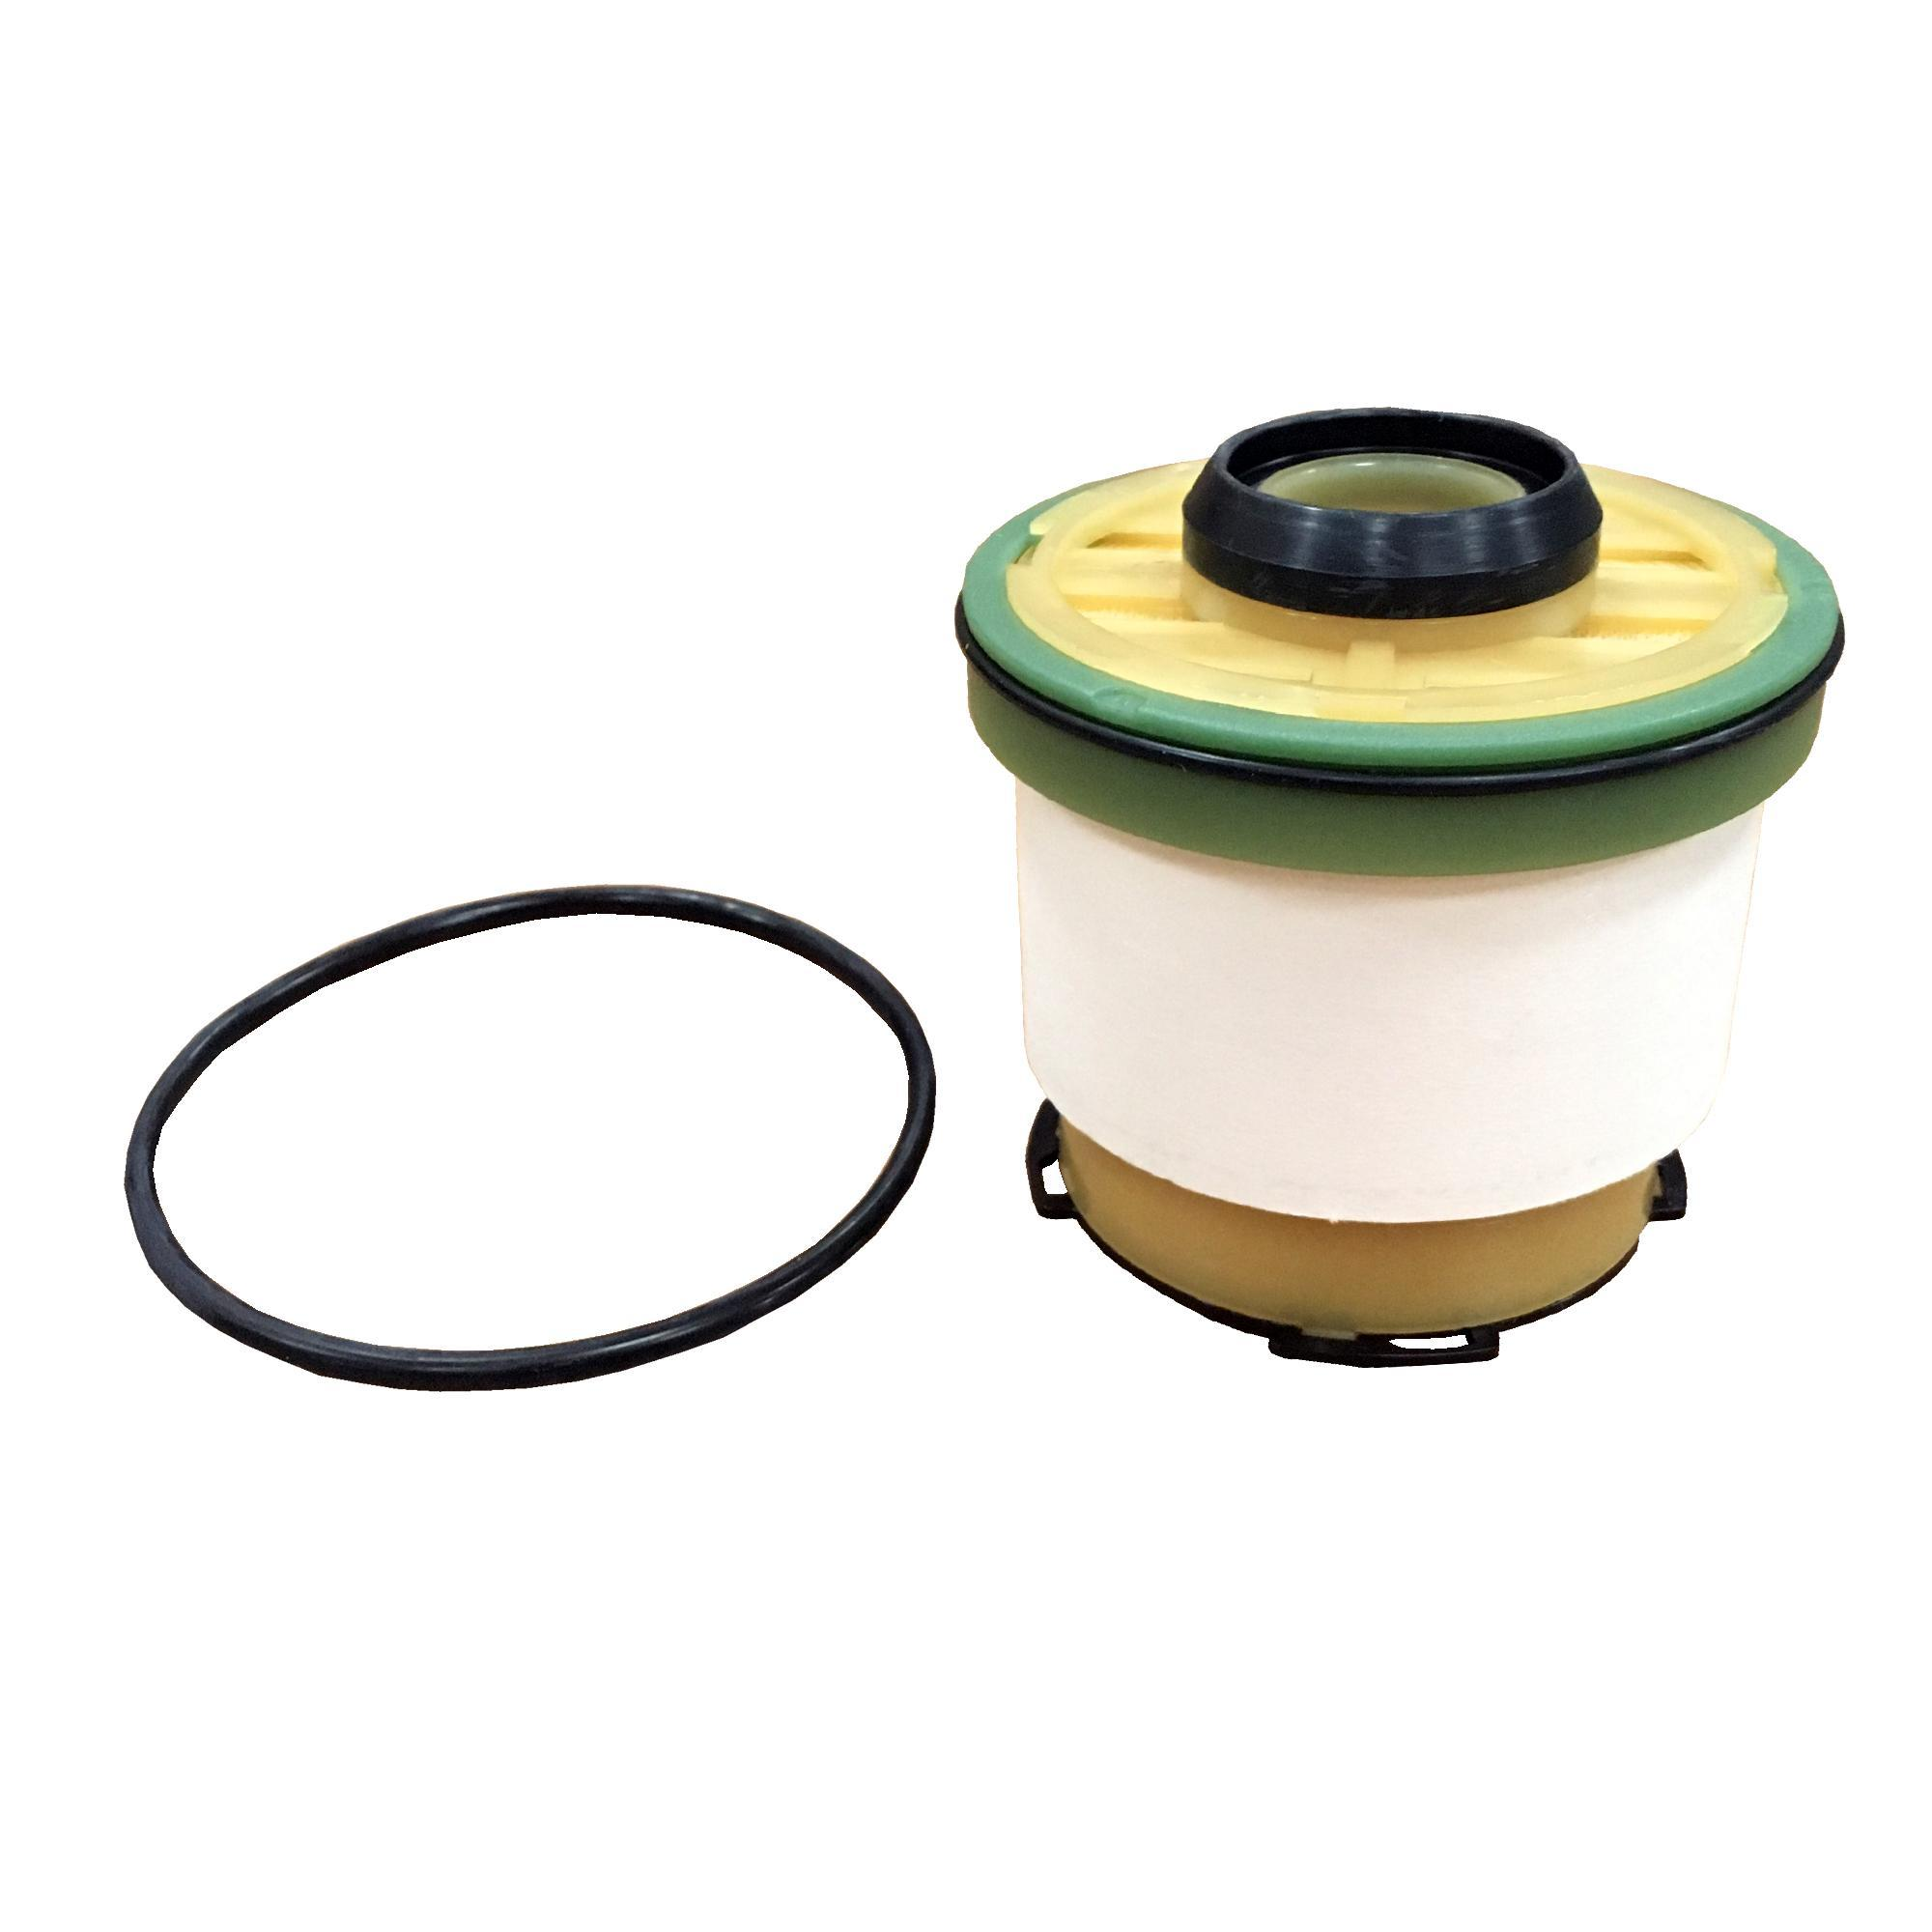 Fuel Filter For Sale Gas Online Brands Prices Reviews In Mercedes Benz Filters Fleetmax Ford Ranger 22 32 Tdci Diesel And Everest 2012 2017